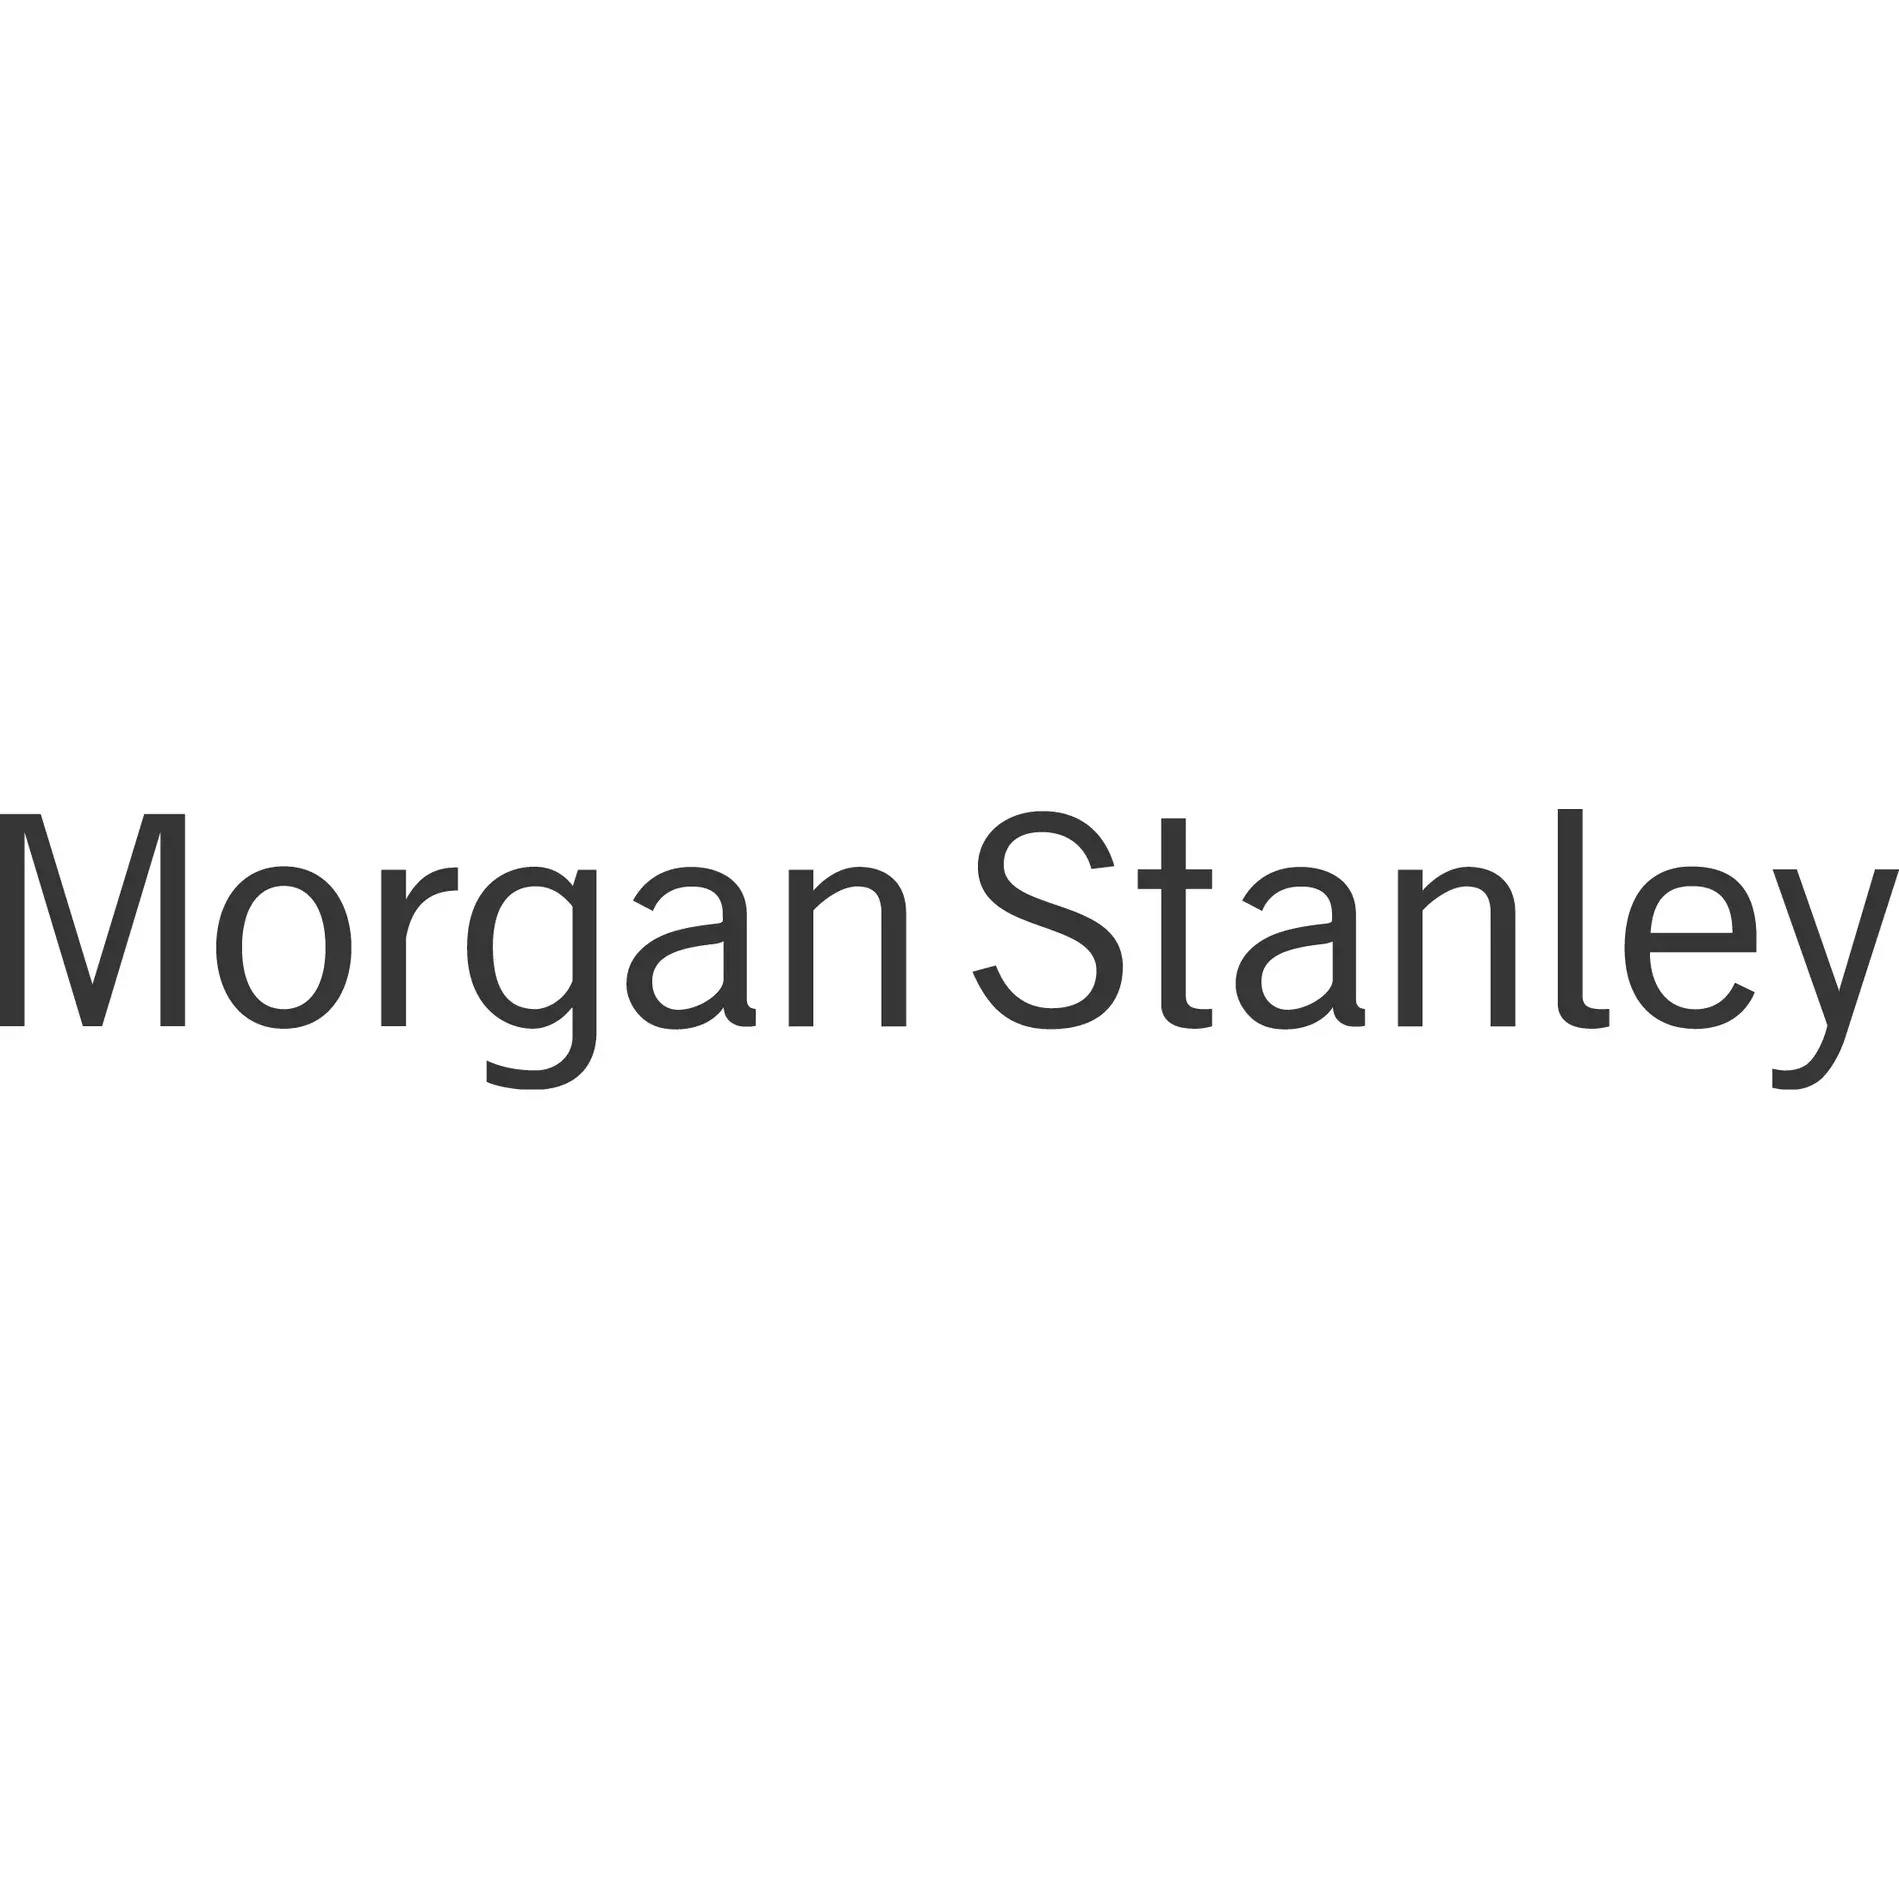 Lee Langley - Morgan Stanley